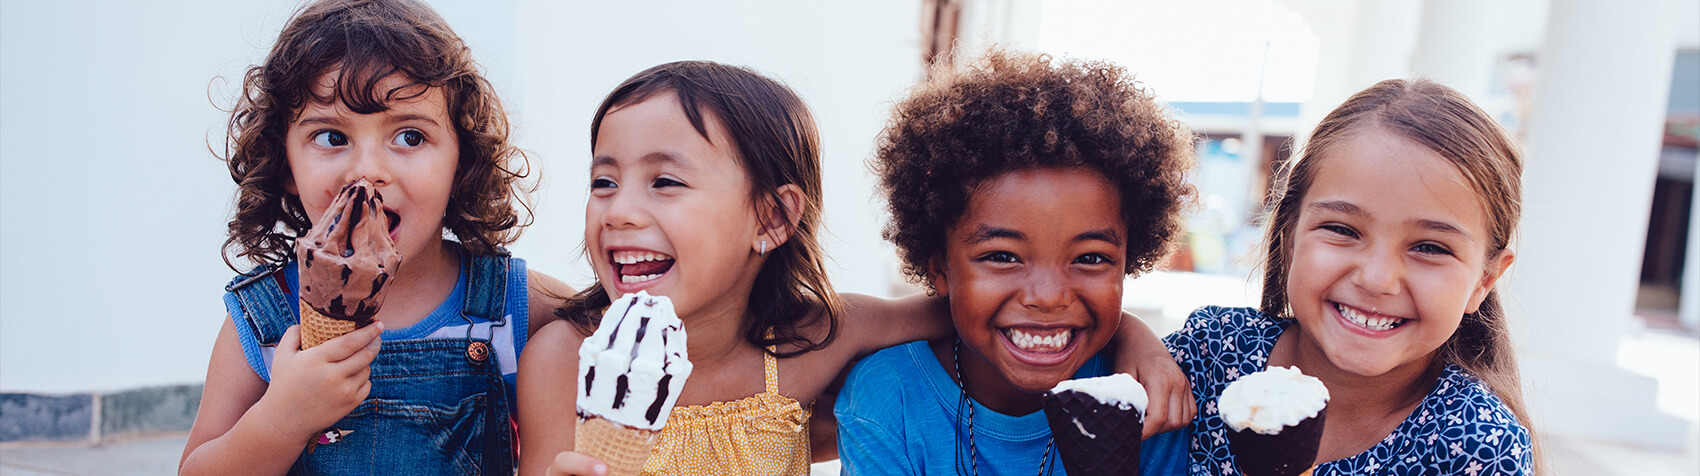 Children laughing and smiling while eating ice cream